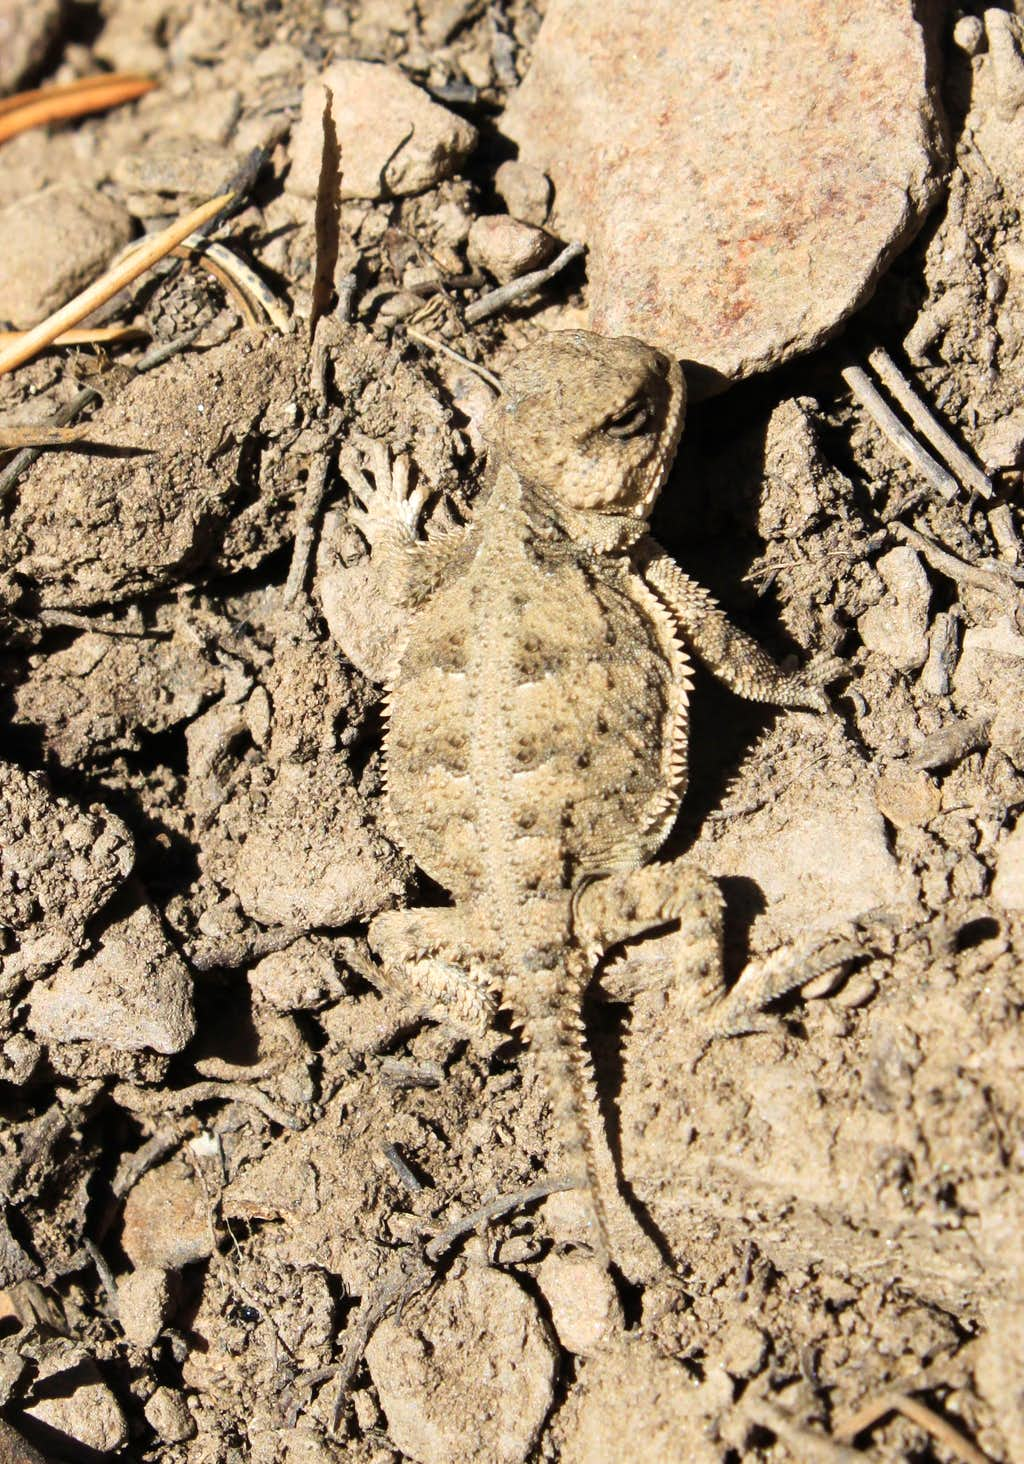 Horny toad